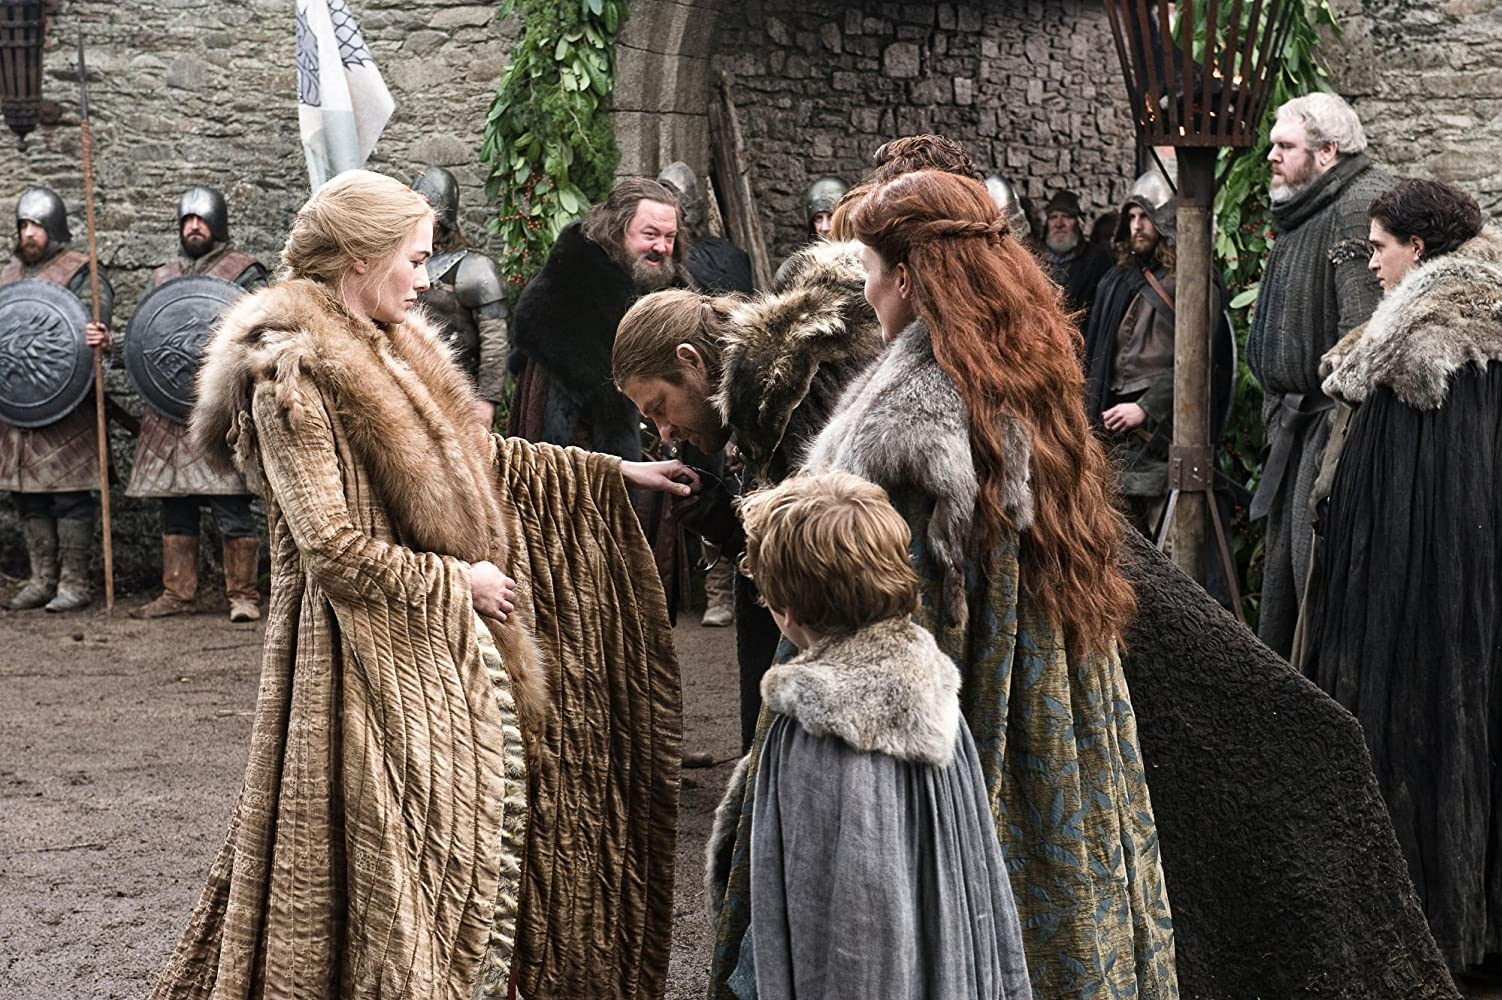 Sean Bean, Mark Addy, Michelle Fairley, Lena Headey, Kit Harington, Art Parkinson, and Kristian Nairn in Game of Thrones (2011)